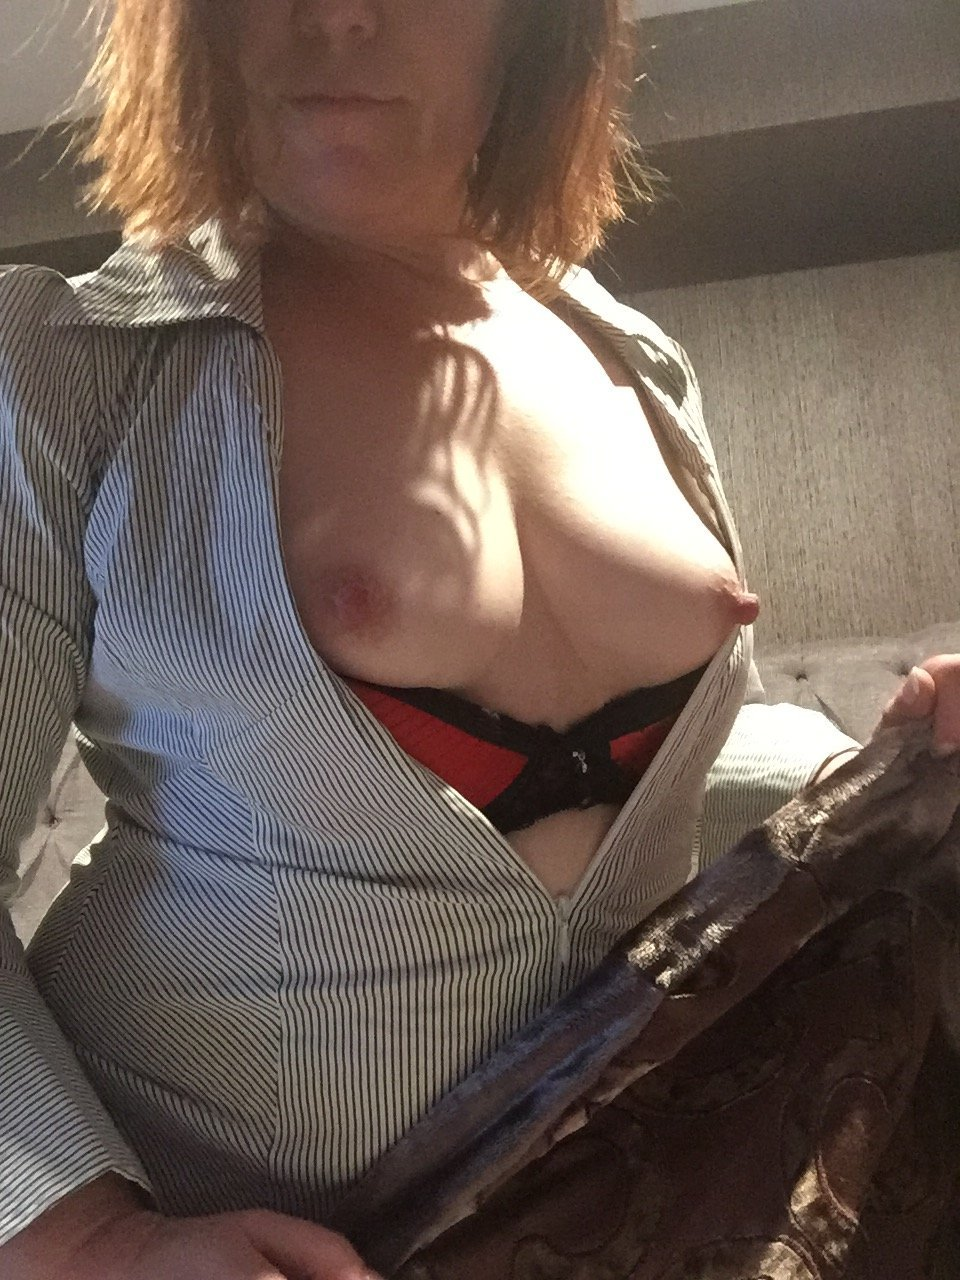 Brisbane Escort, natural breasts, long pink nipples